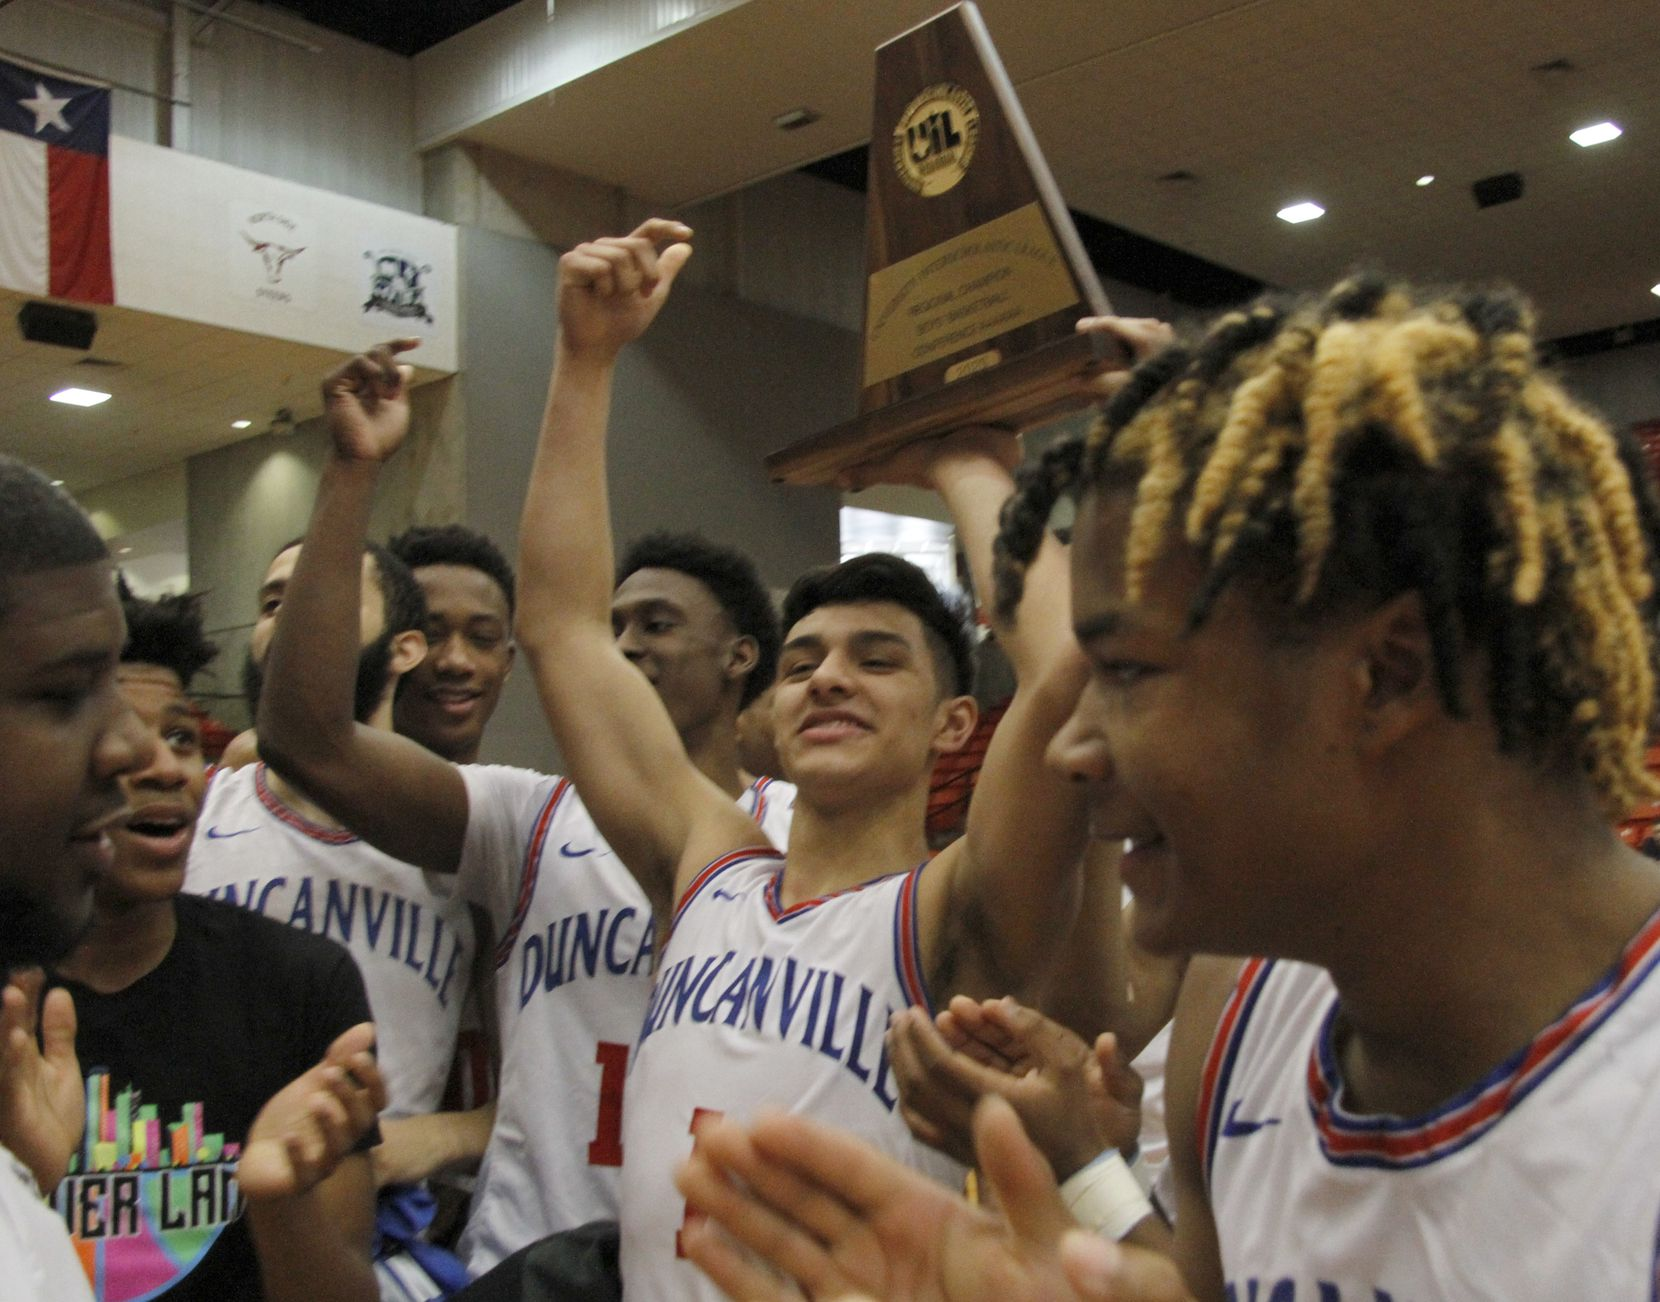 Duncanville guard Cedric Baty (1) raises the Class 6A Region 1 championship trophy as he celebrates with teammates following the Panthers' 59-43 victory over Odessa Permian to gain a berth in the UIL state tournament. The two teams played in the Class 6A Region 1 championship boys basketball playoff game at Wilkerson-Greines Activity Center in Fort Worth on March 7, 2020.